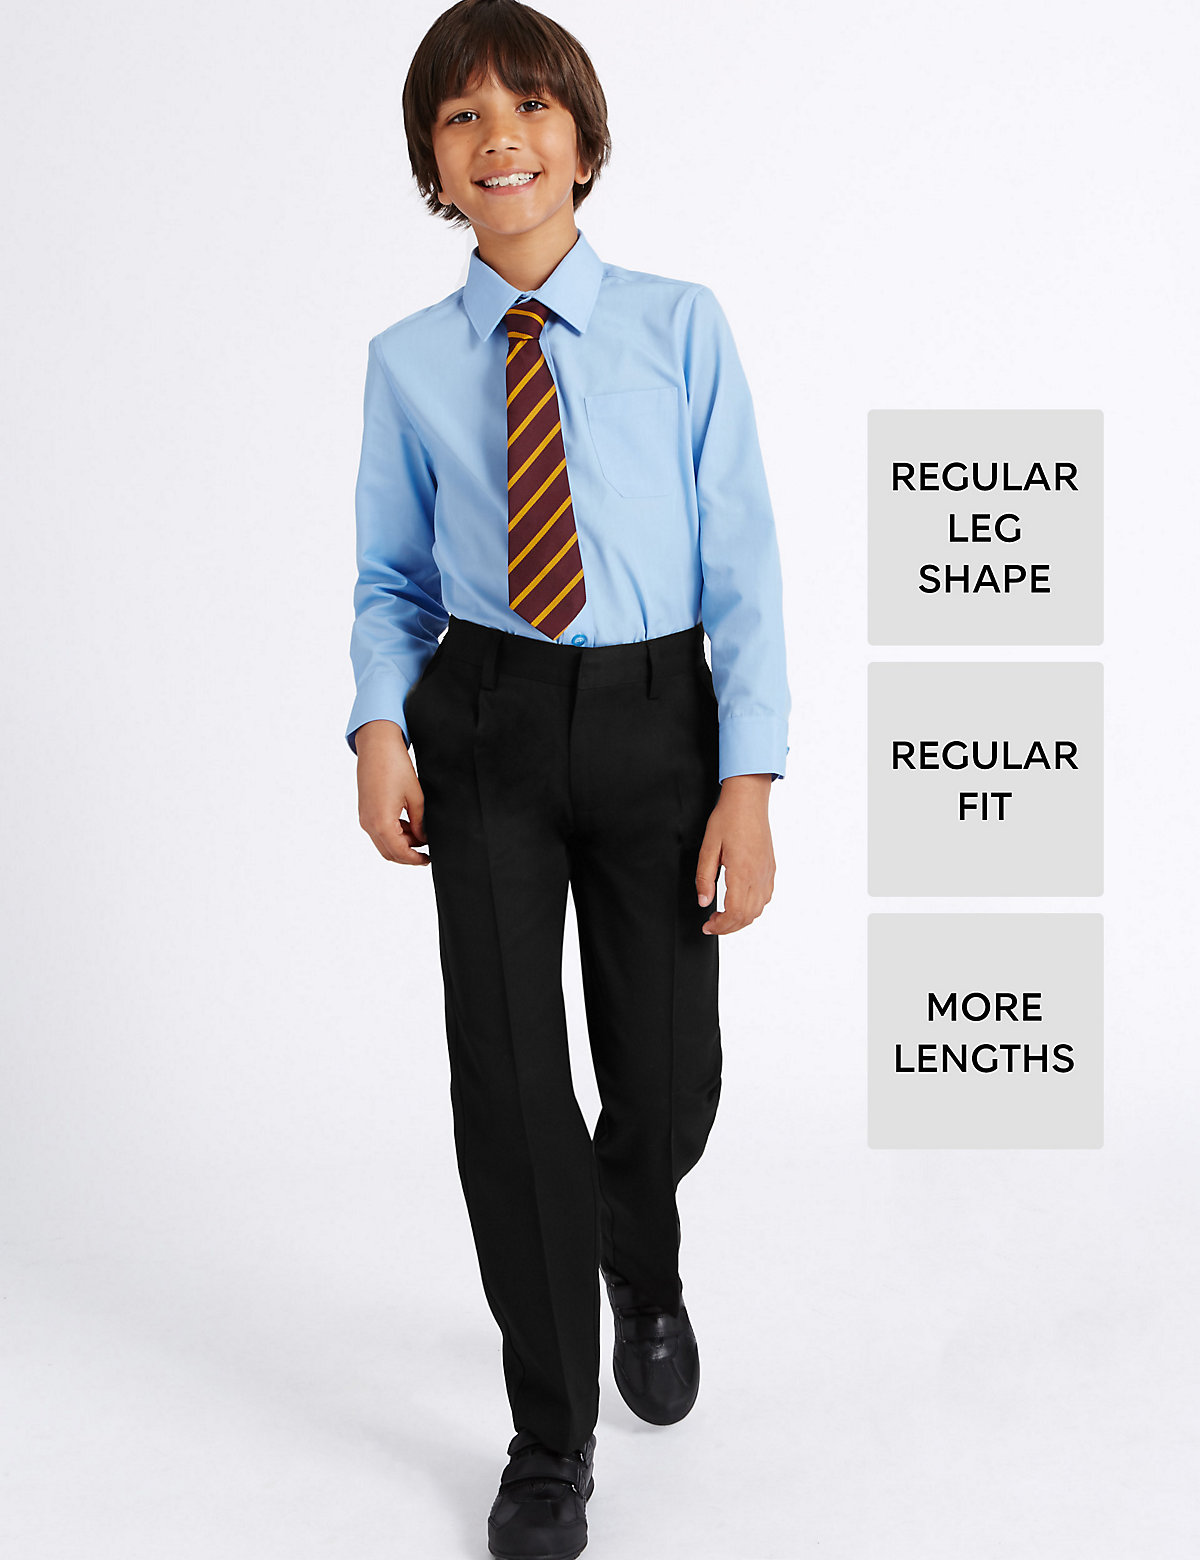 Boys' Longer Length Straight Leg Trousers.